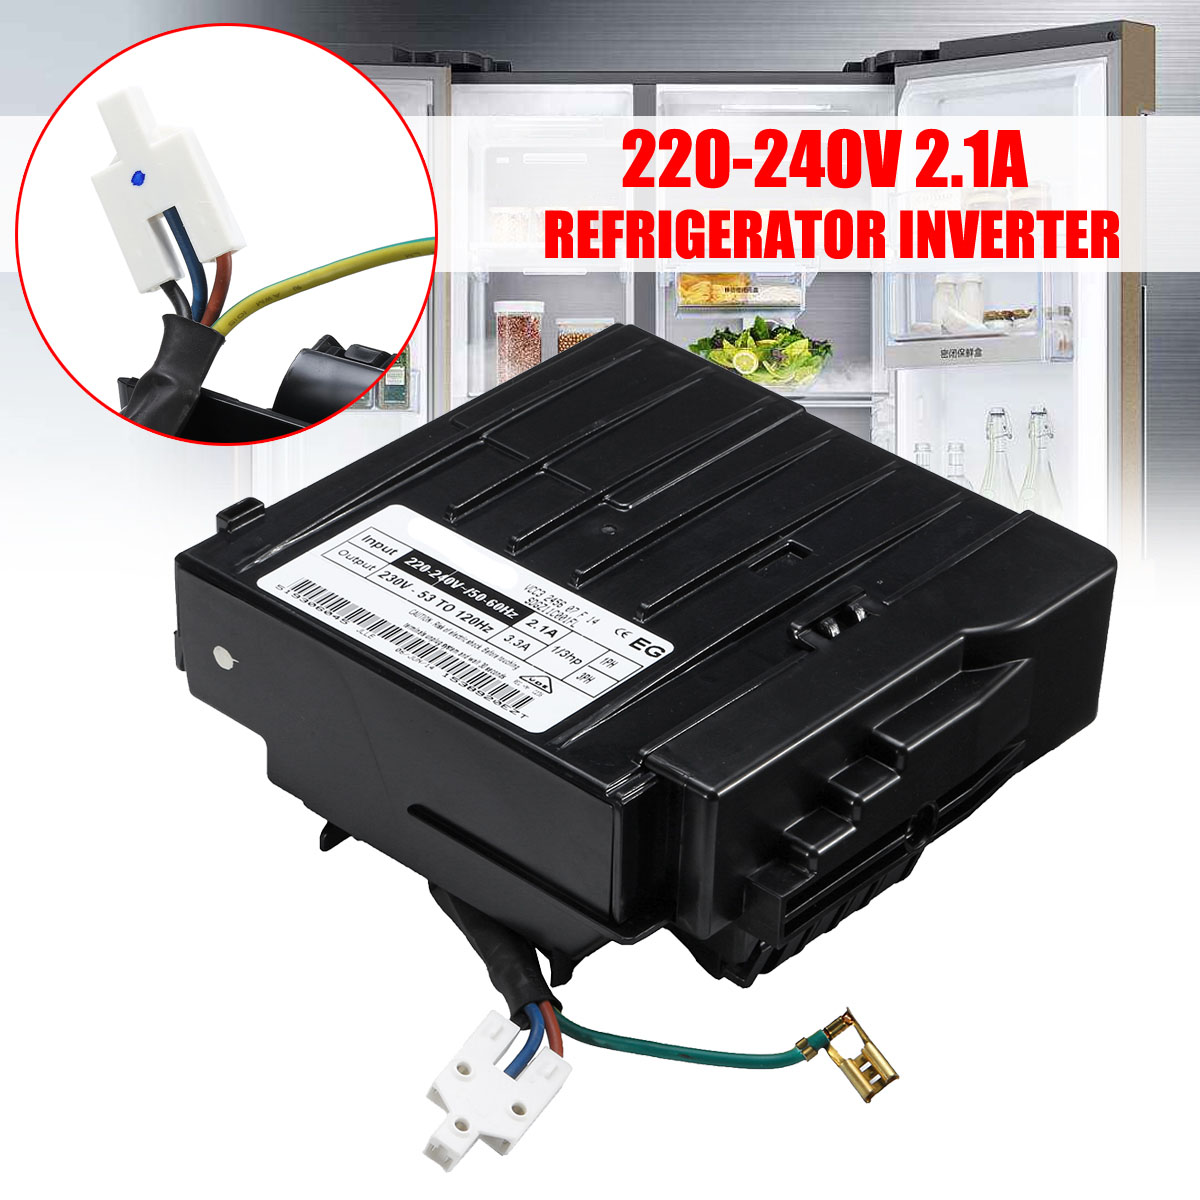 VCC3 2456 220-240V Hole Refrigerator Inverter Board For Embraco